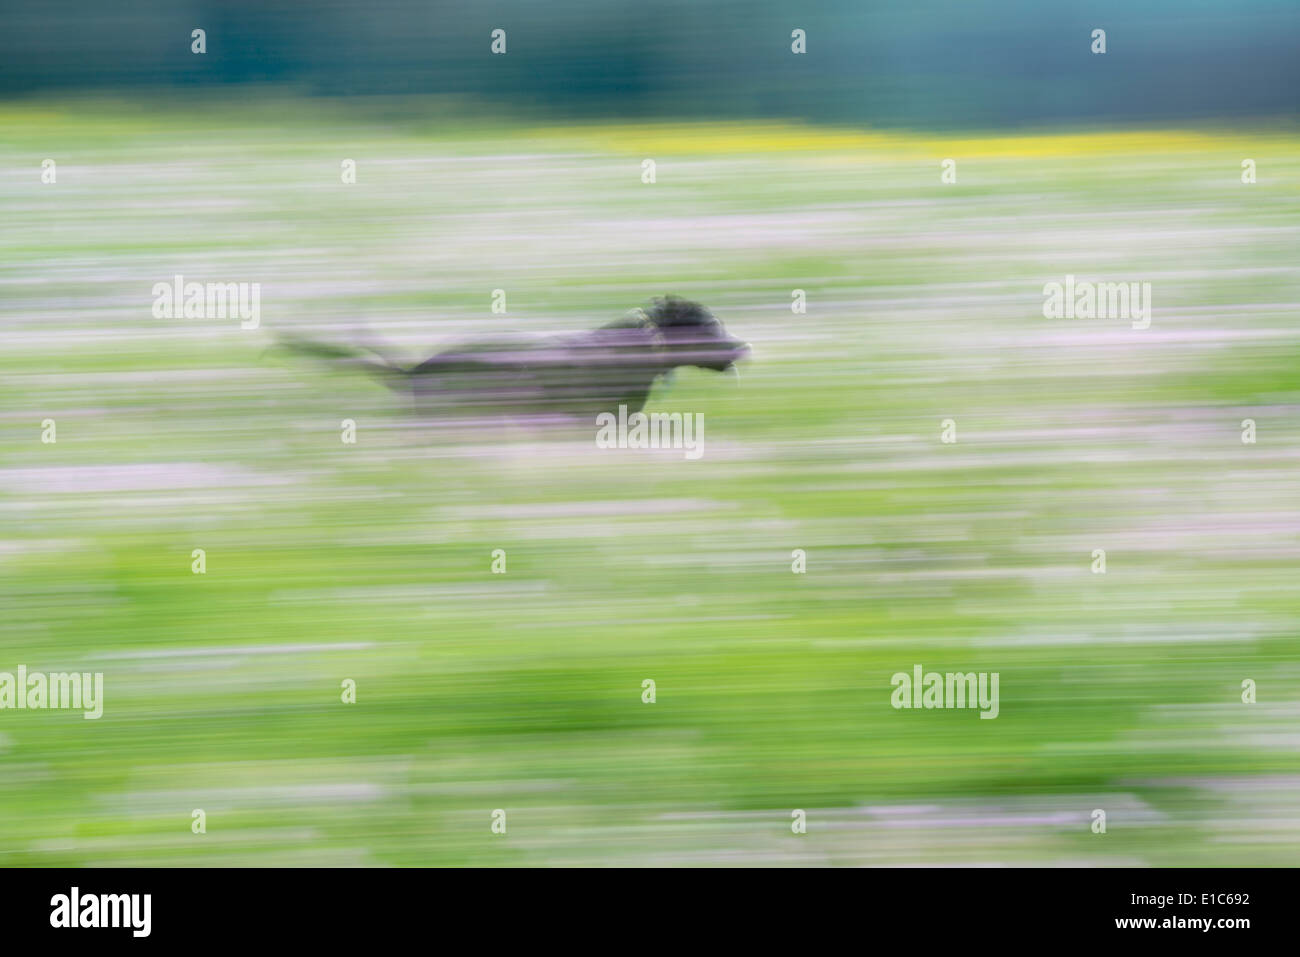 A black labrador dog running through a wildflower meadow. - Stock Image